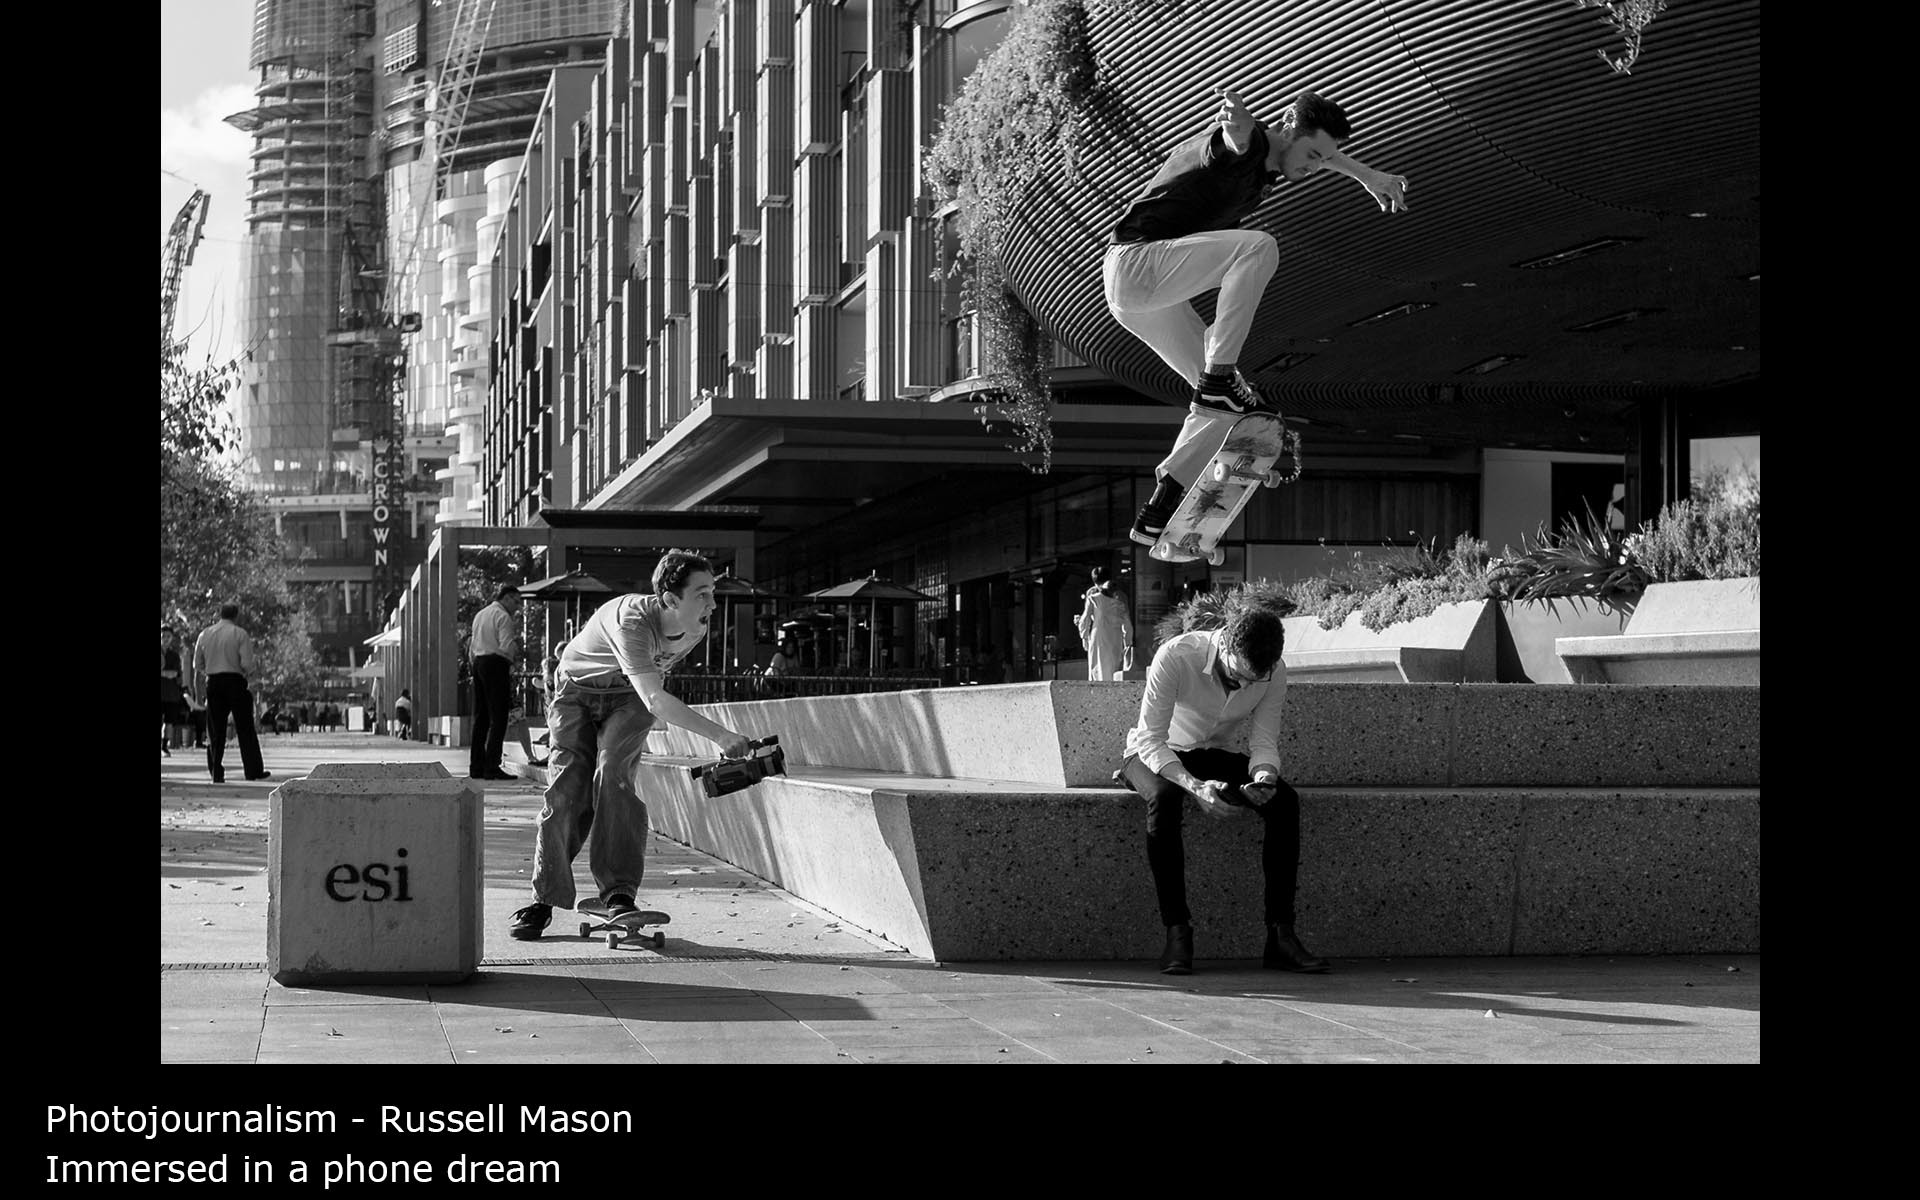 Immersed in a phone dream - Russell Mason